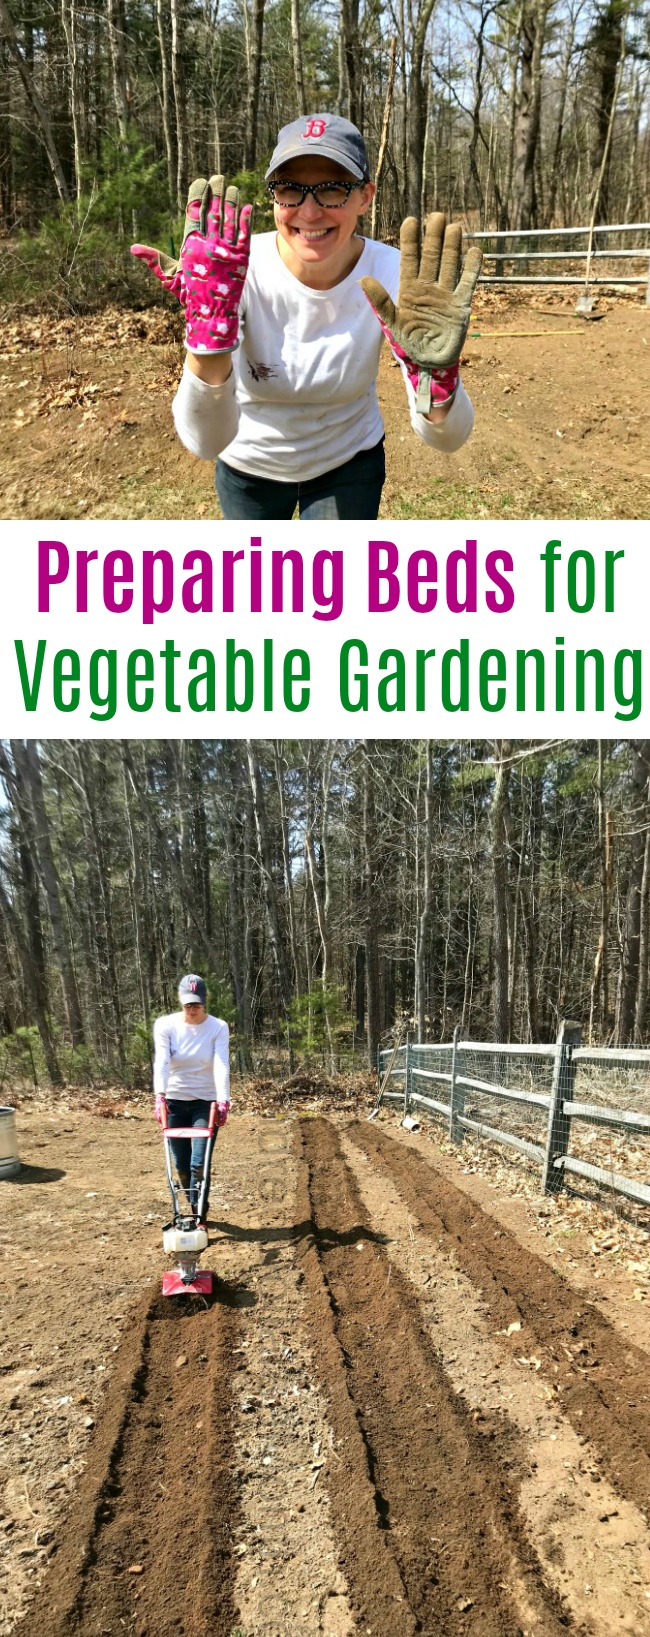 Gardening in New England – Clearing Beds, Tilling Rows and Scratching Like Crazy!